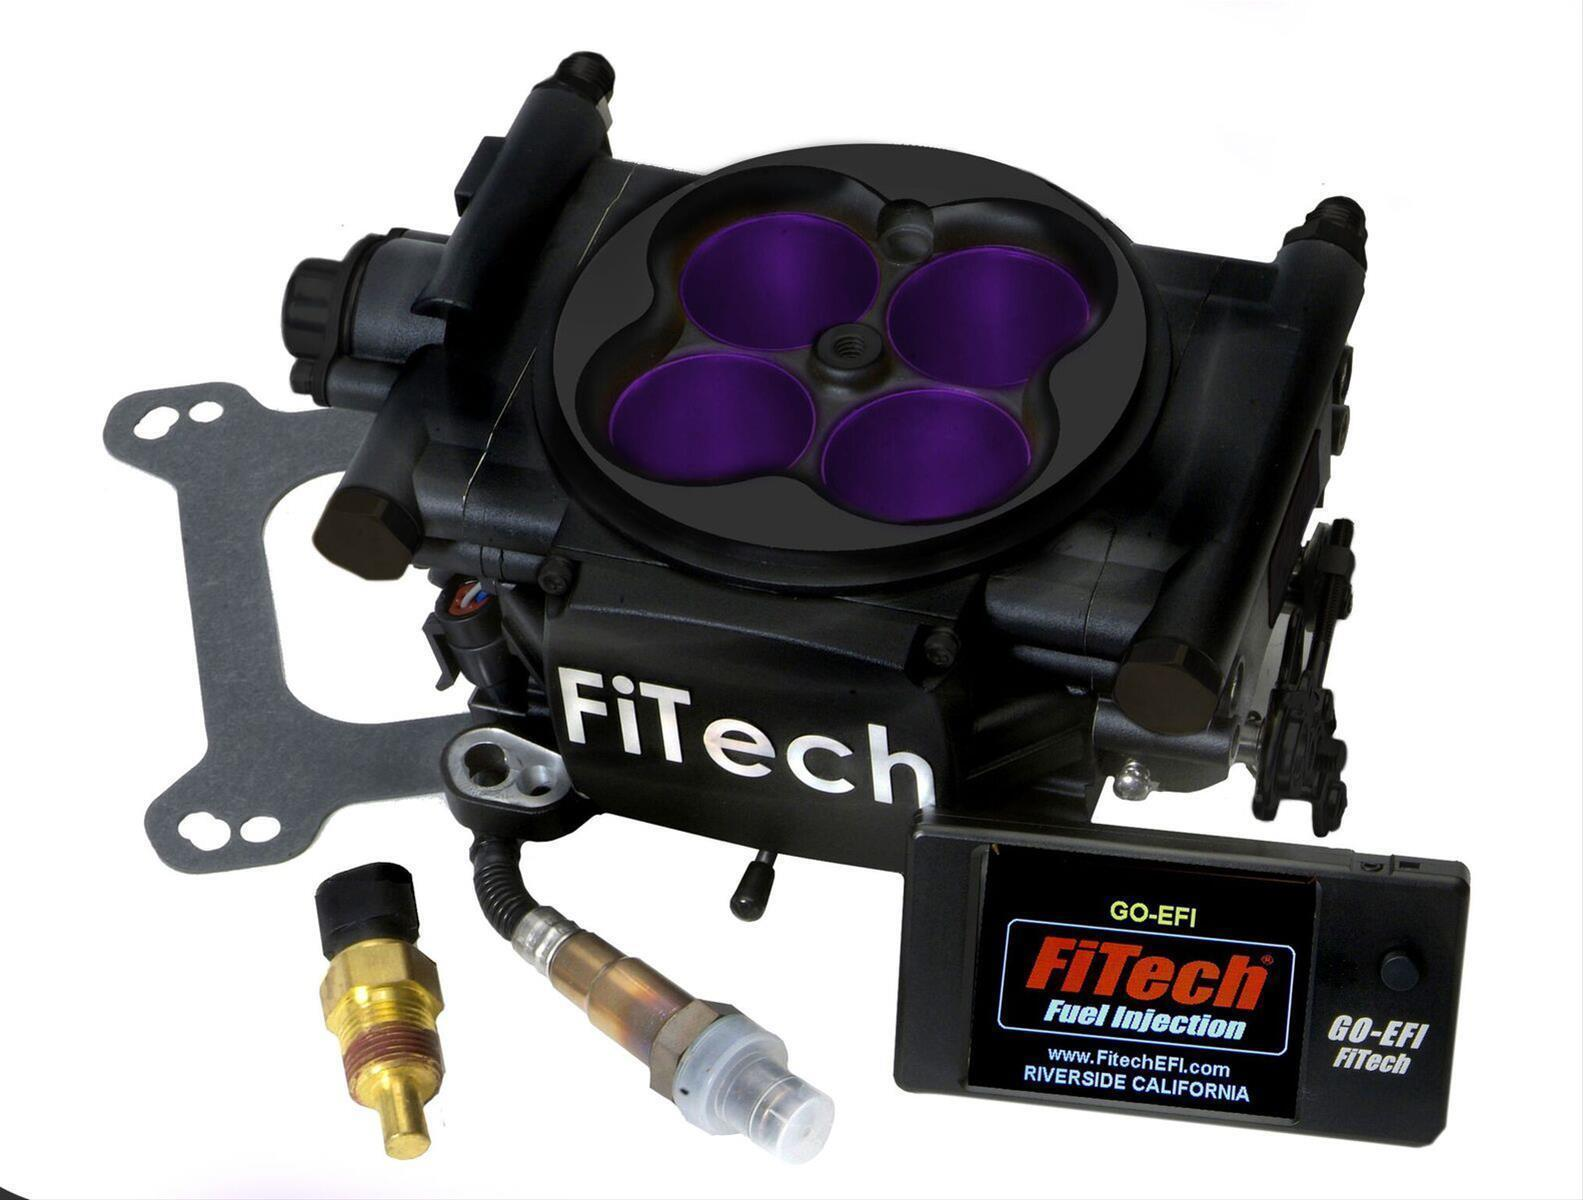 FITECH MEANSTREET EFI 800HP SELF TUNING FUEL INJECTION